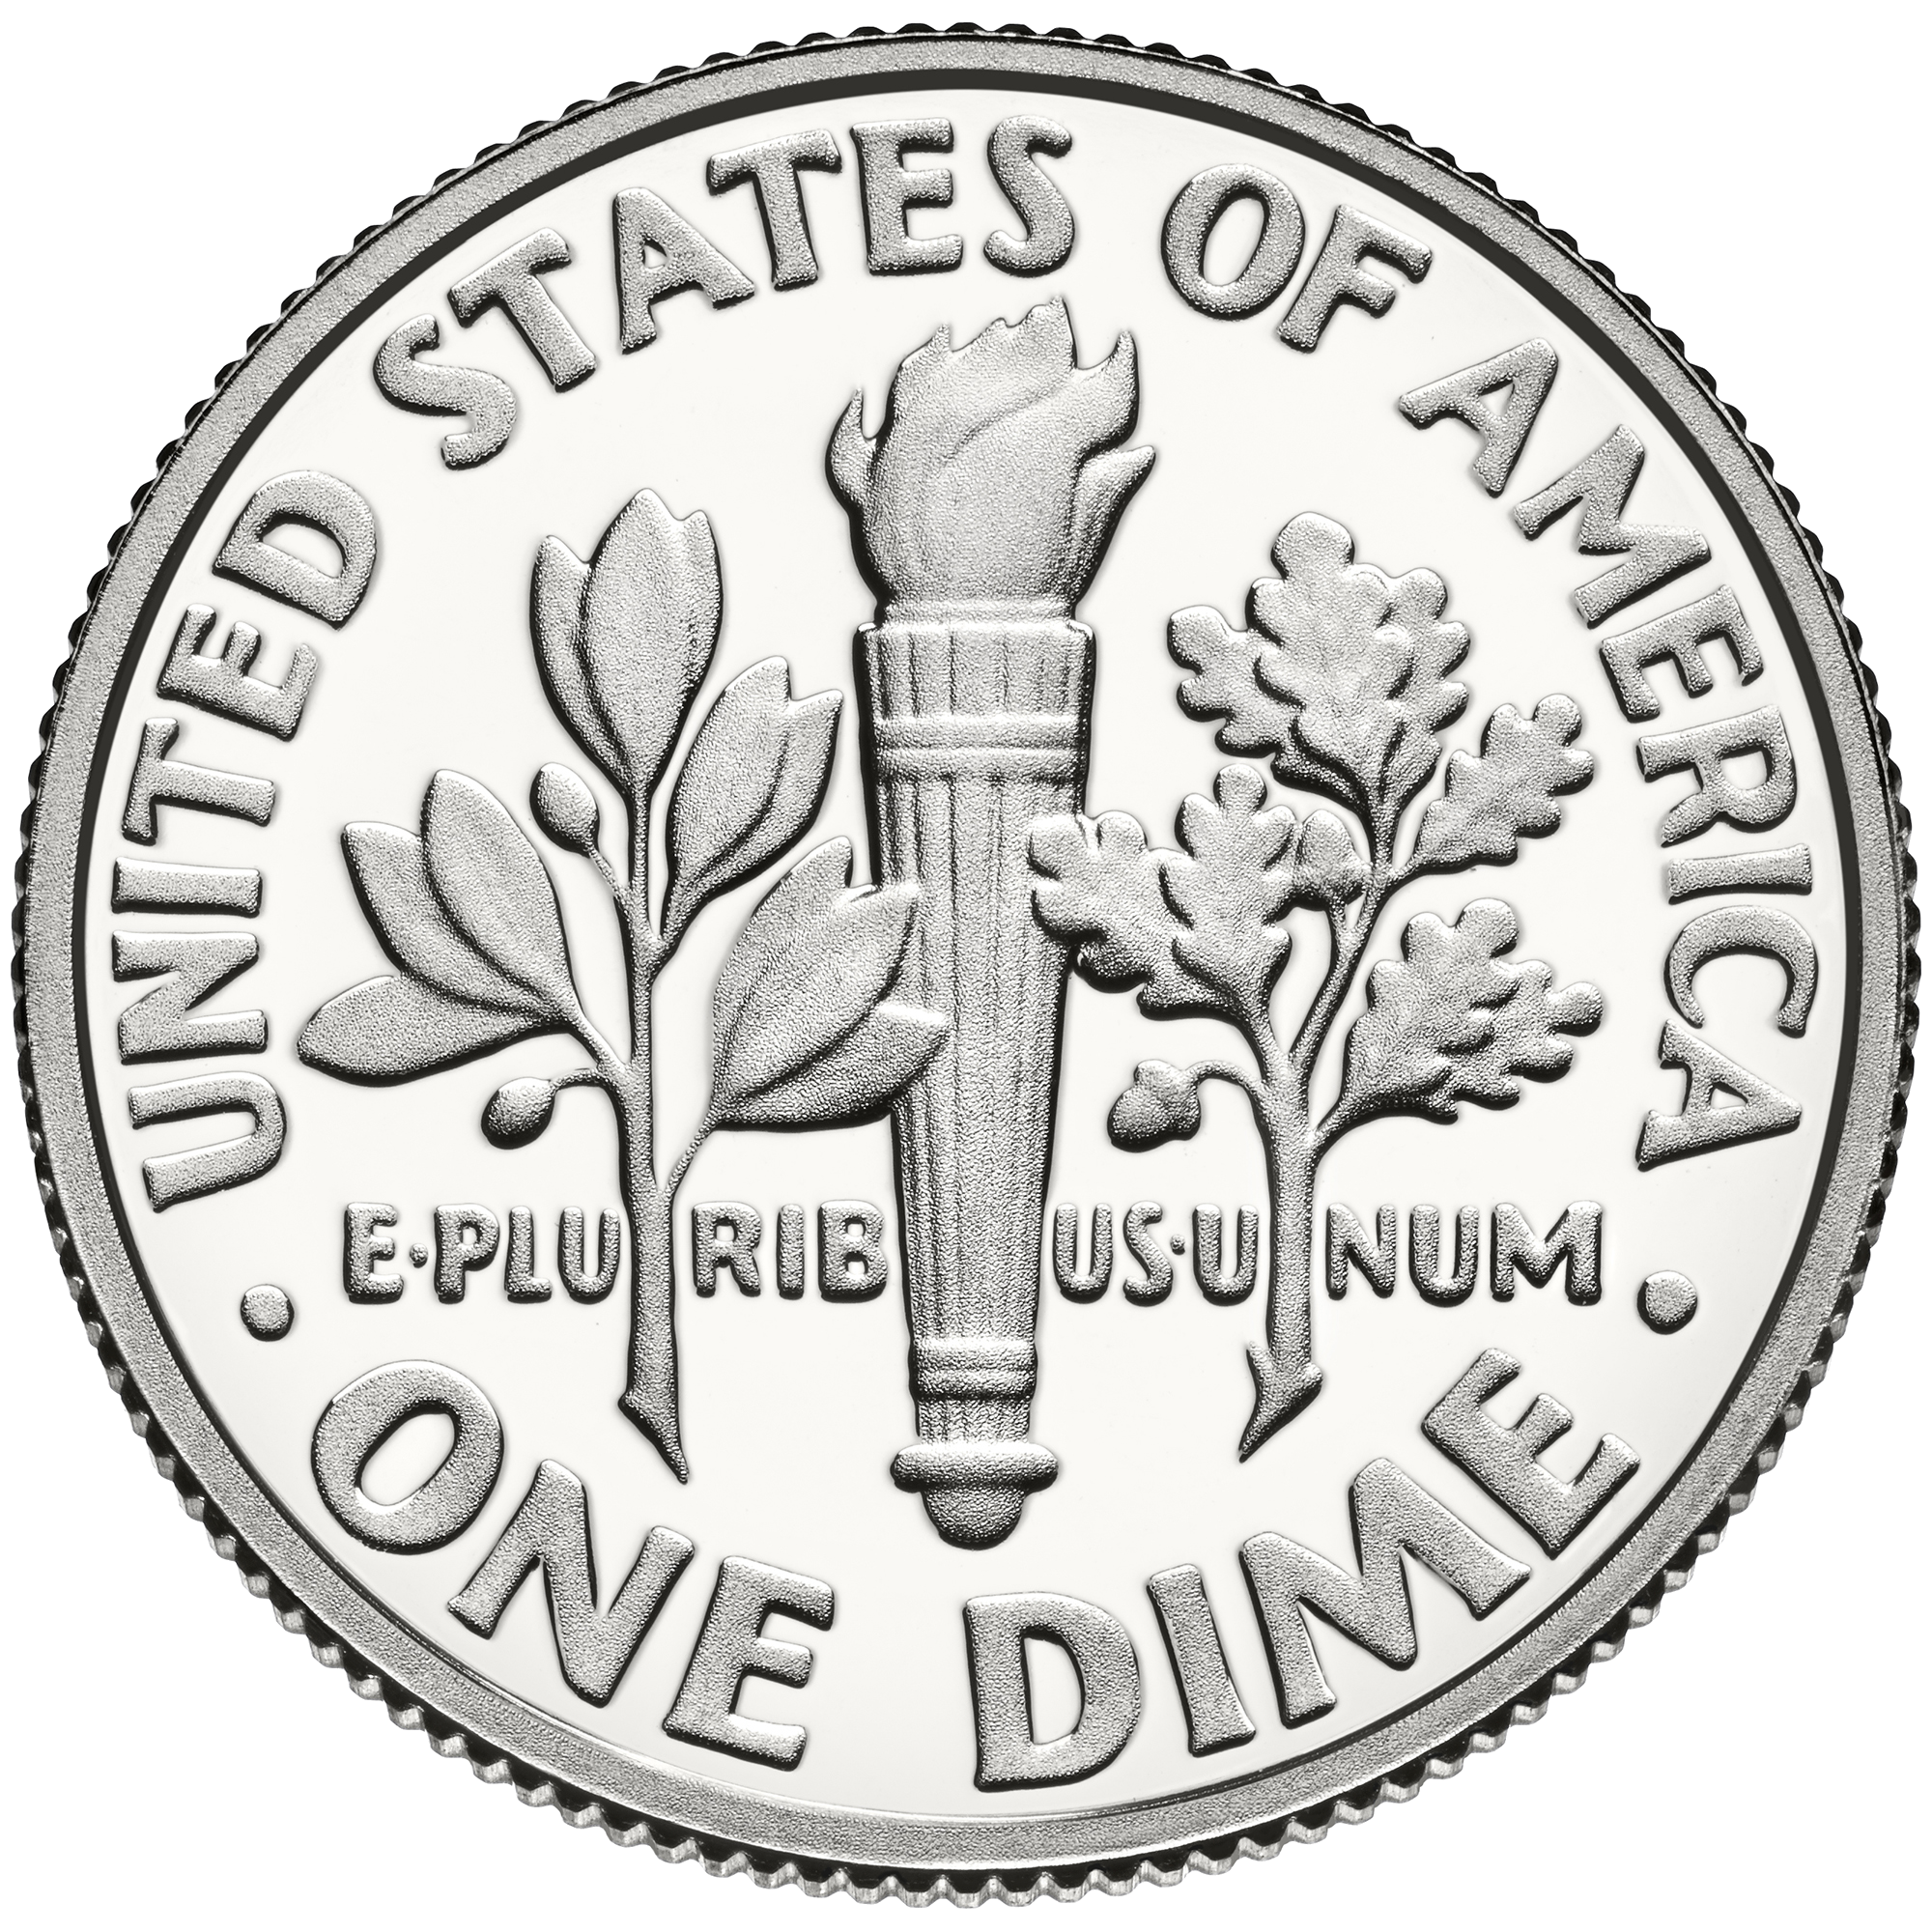 1 dollar bill annuit coeptis frame png. Dime united states coin